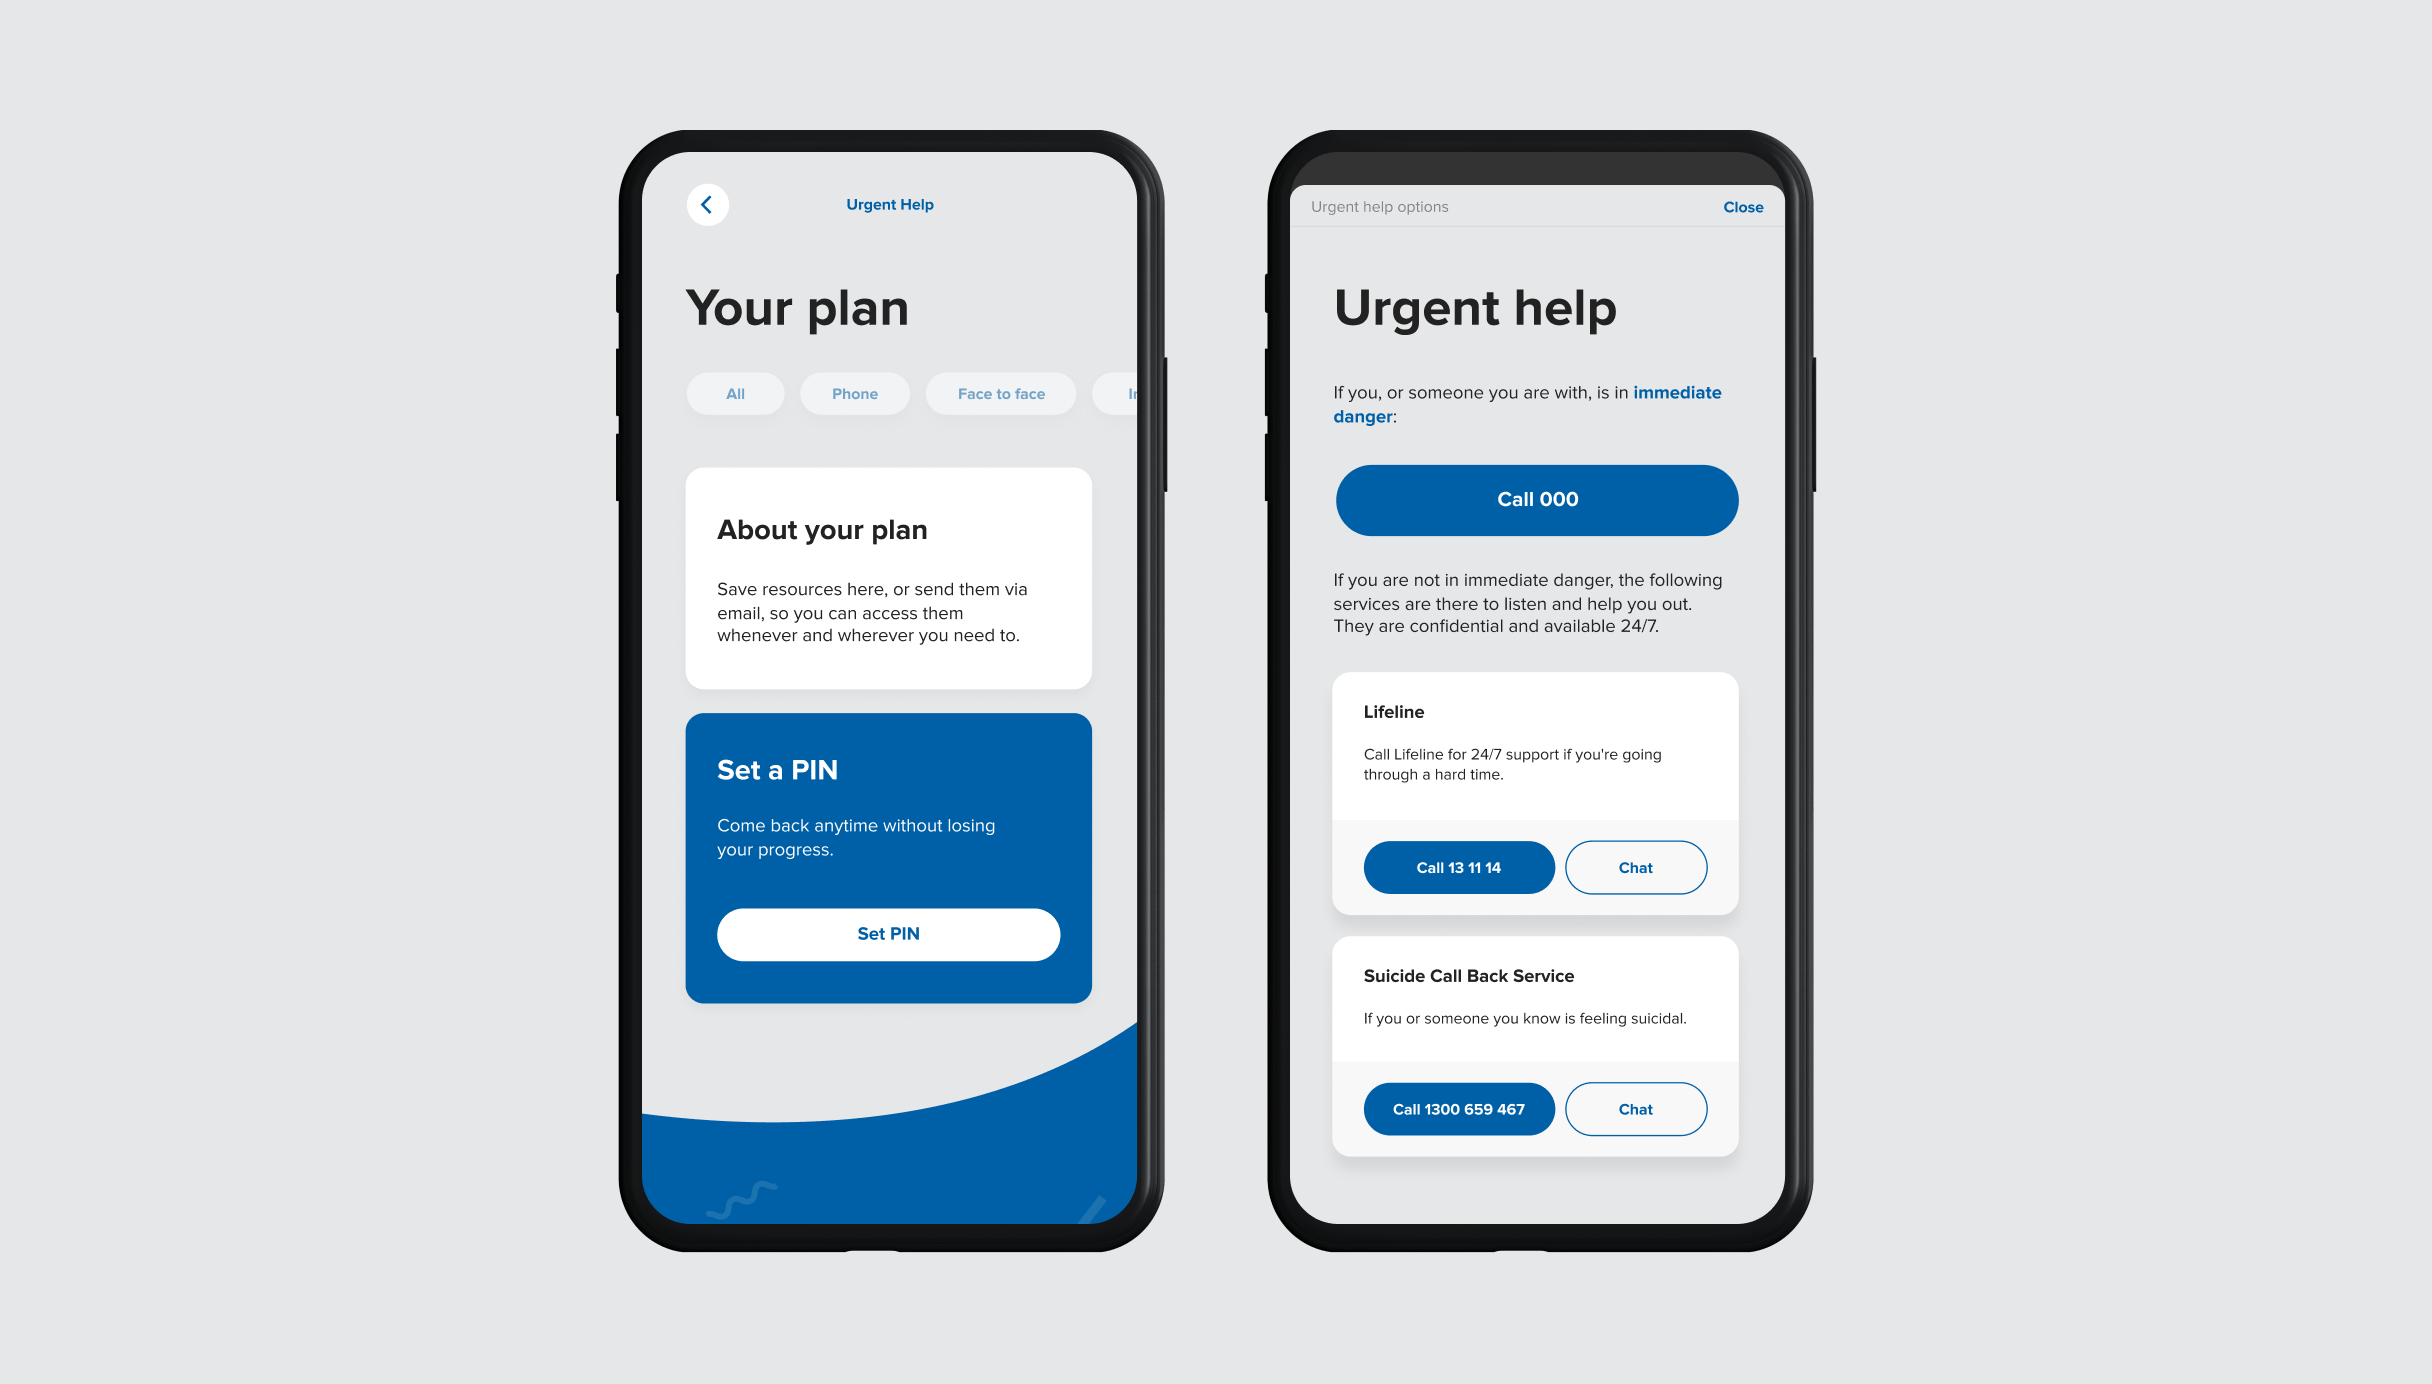 Mobile Next Step your plan and urgent help screens